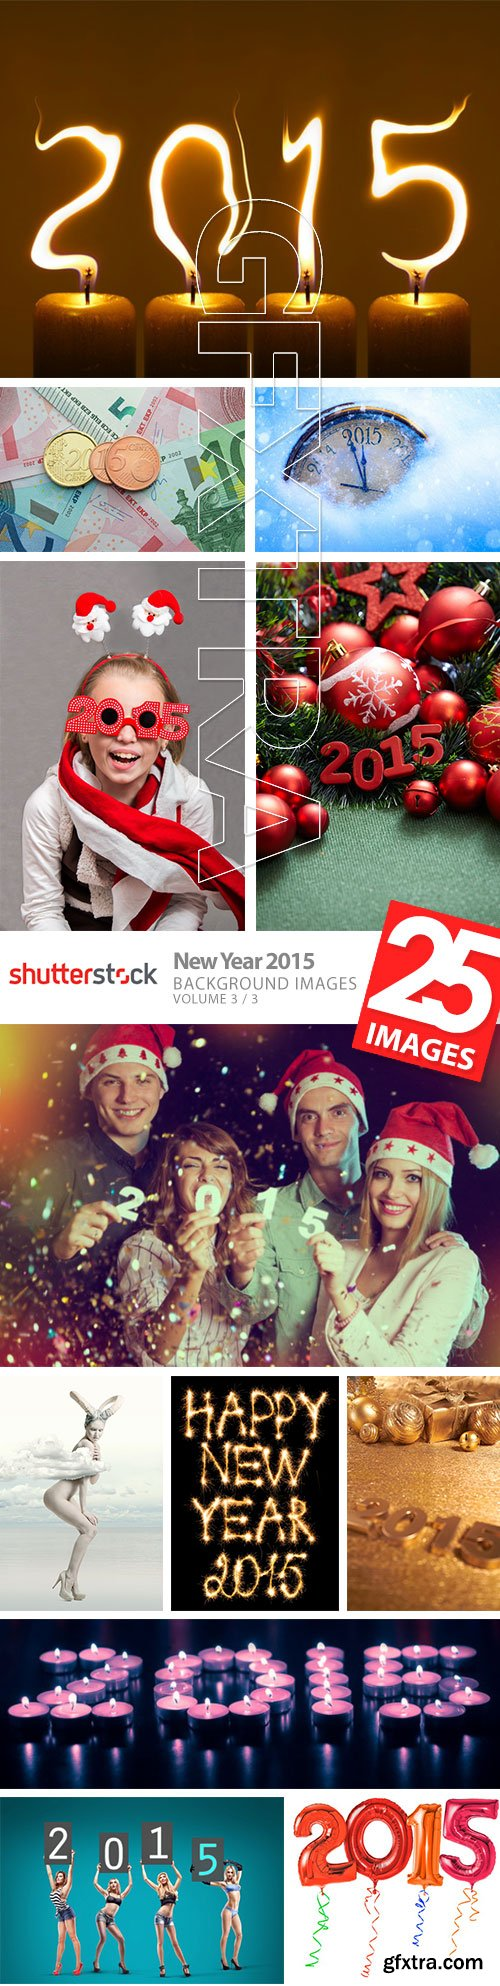 New Year 2015 - Background Images Vol.3, 25xJPG